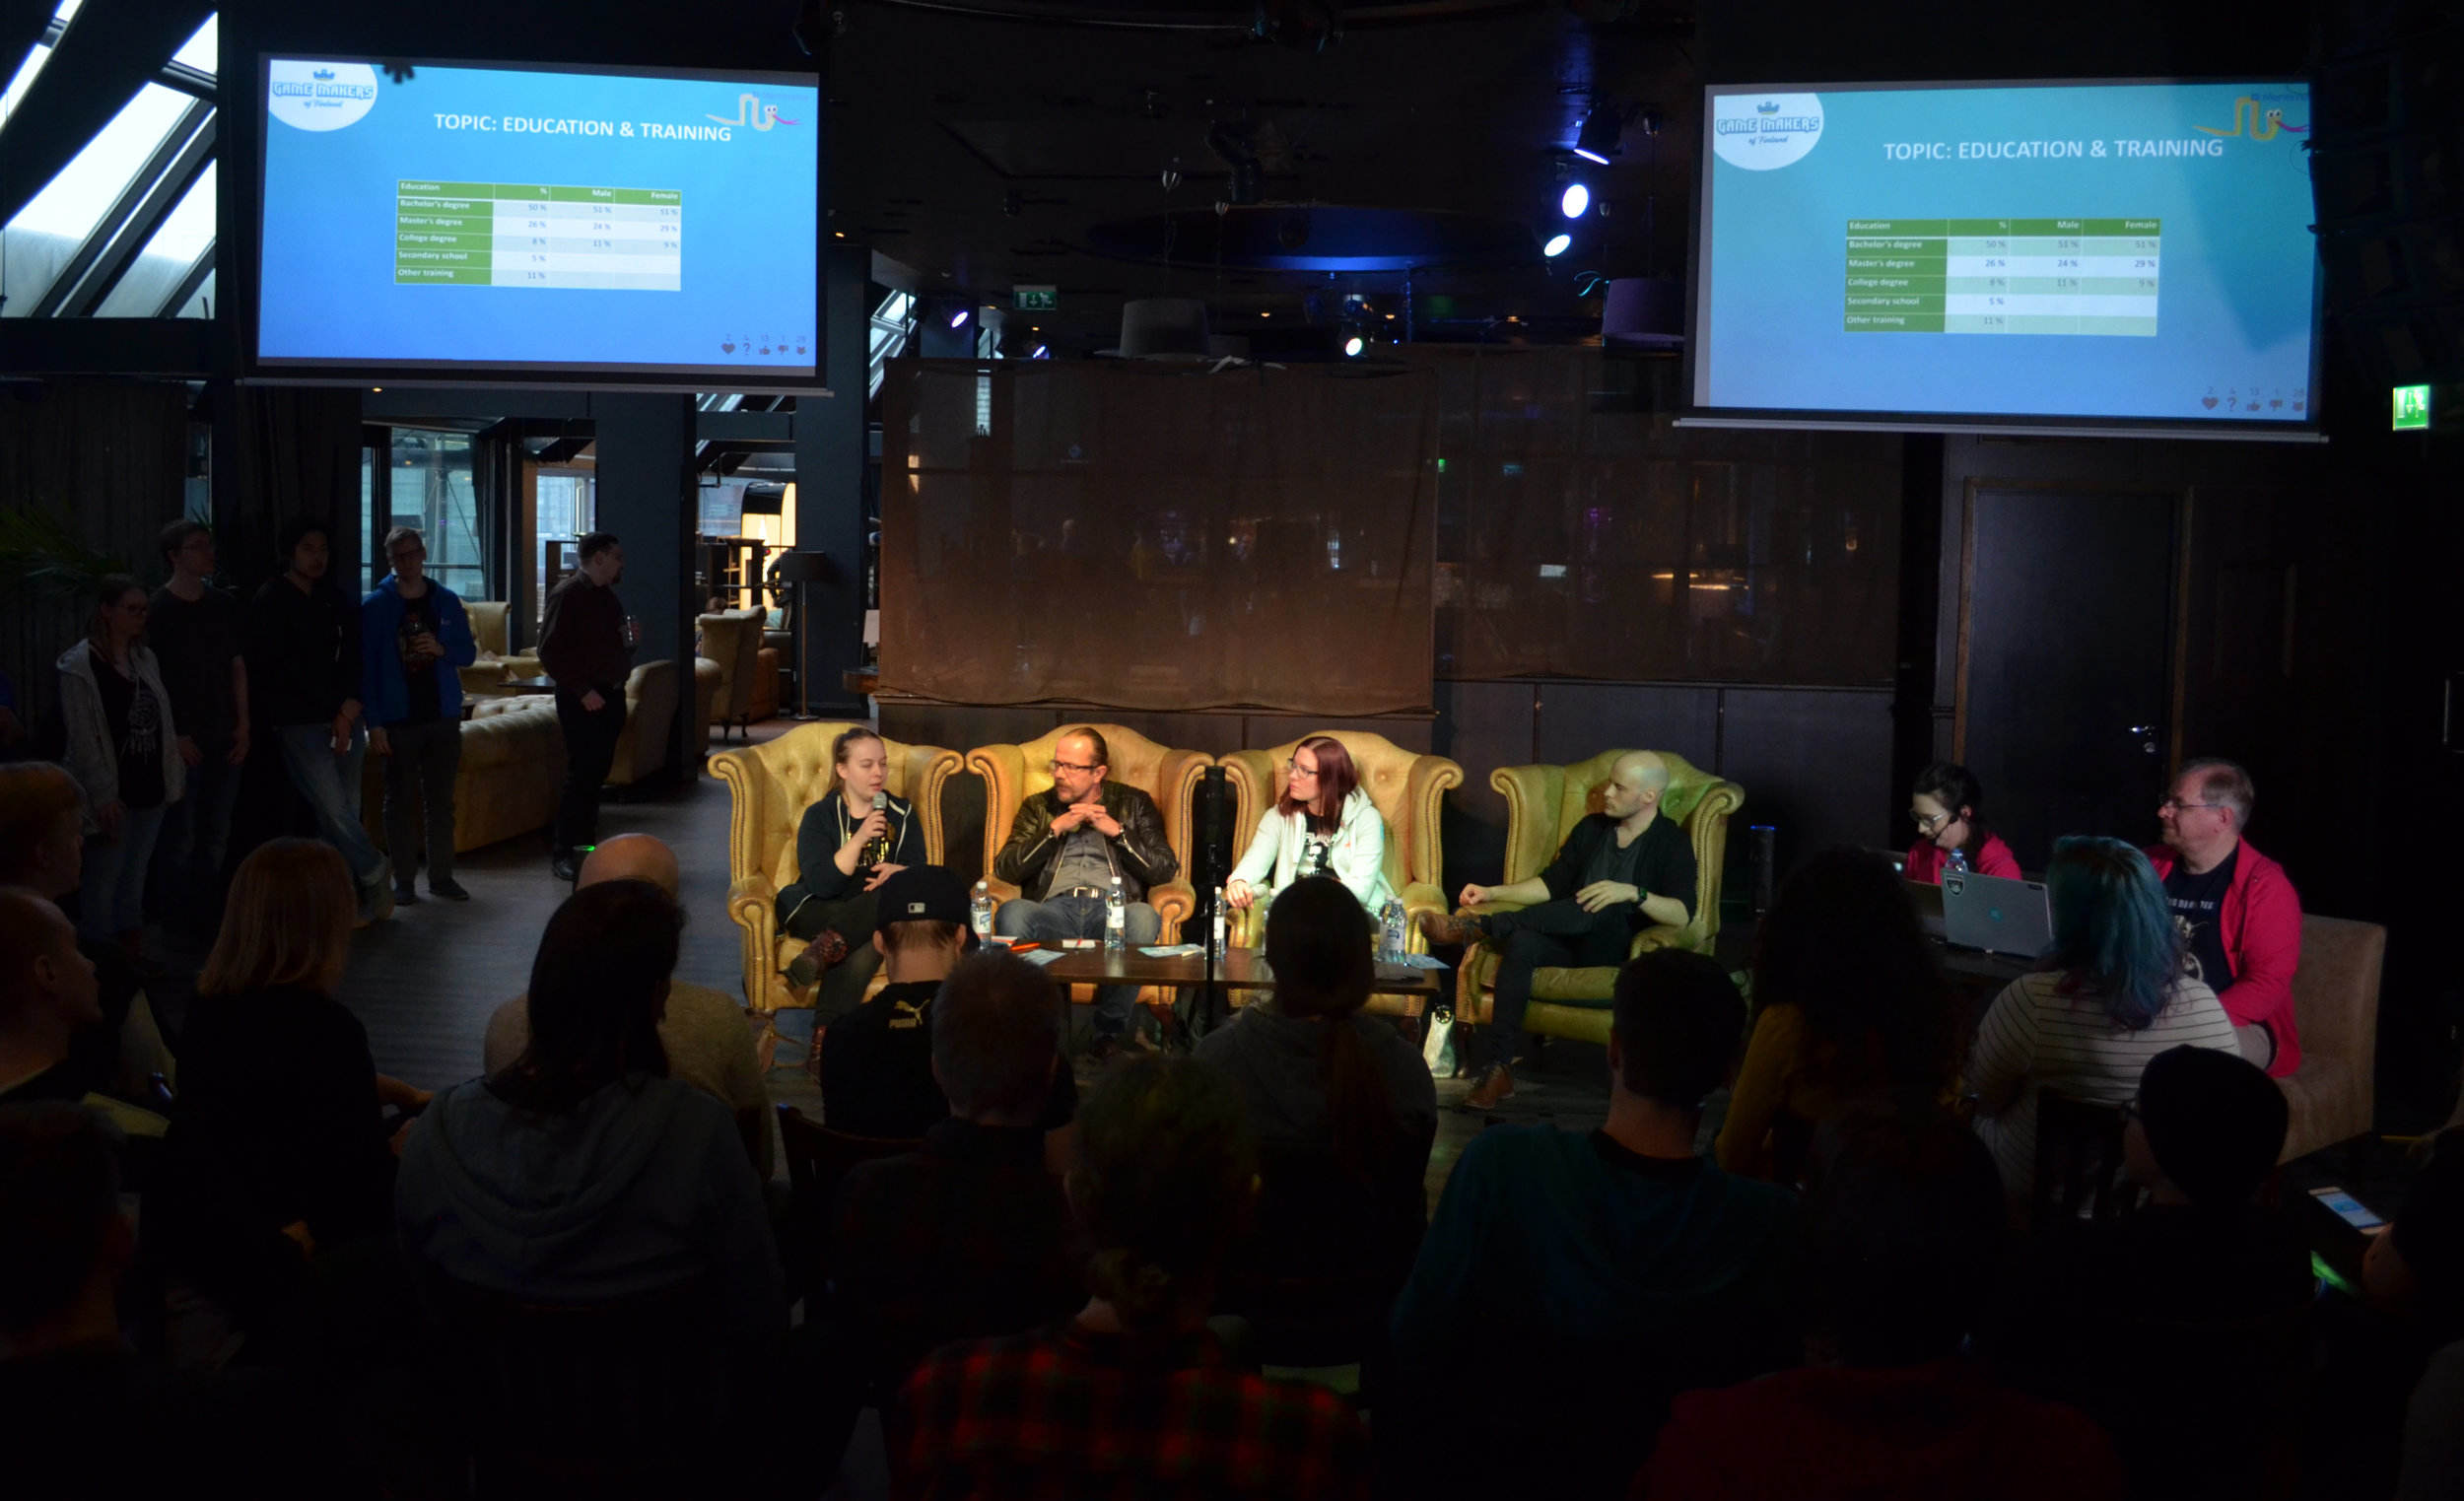 Left to right: Panelists Jenny Tirkkonen, Koopee Hiltunen, Mariina Hallikainen, Joonas Häll and moderators Milla Pennanen and Sami Vuolanne. Photo by Jesse Eloranta.